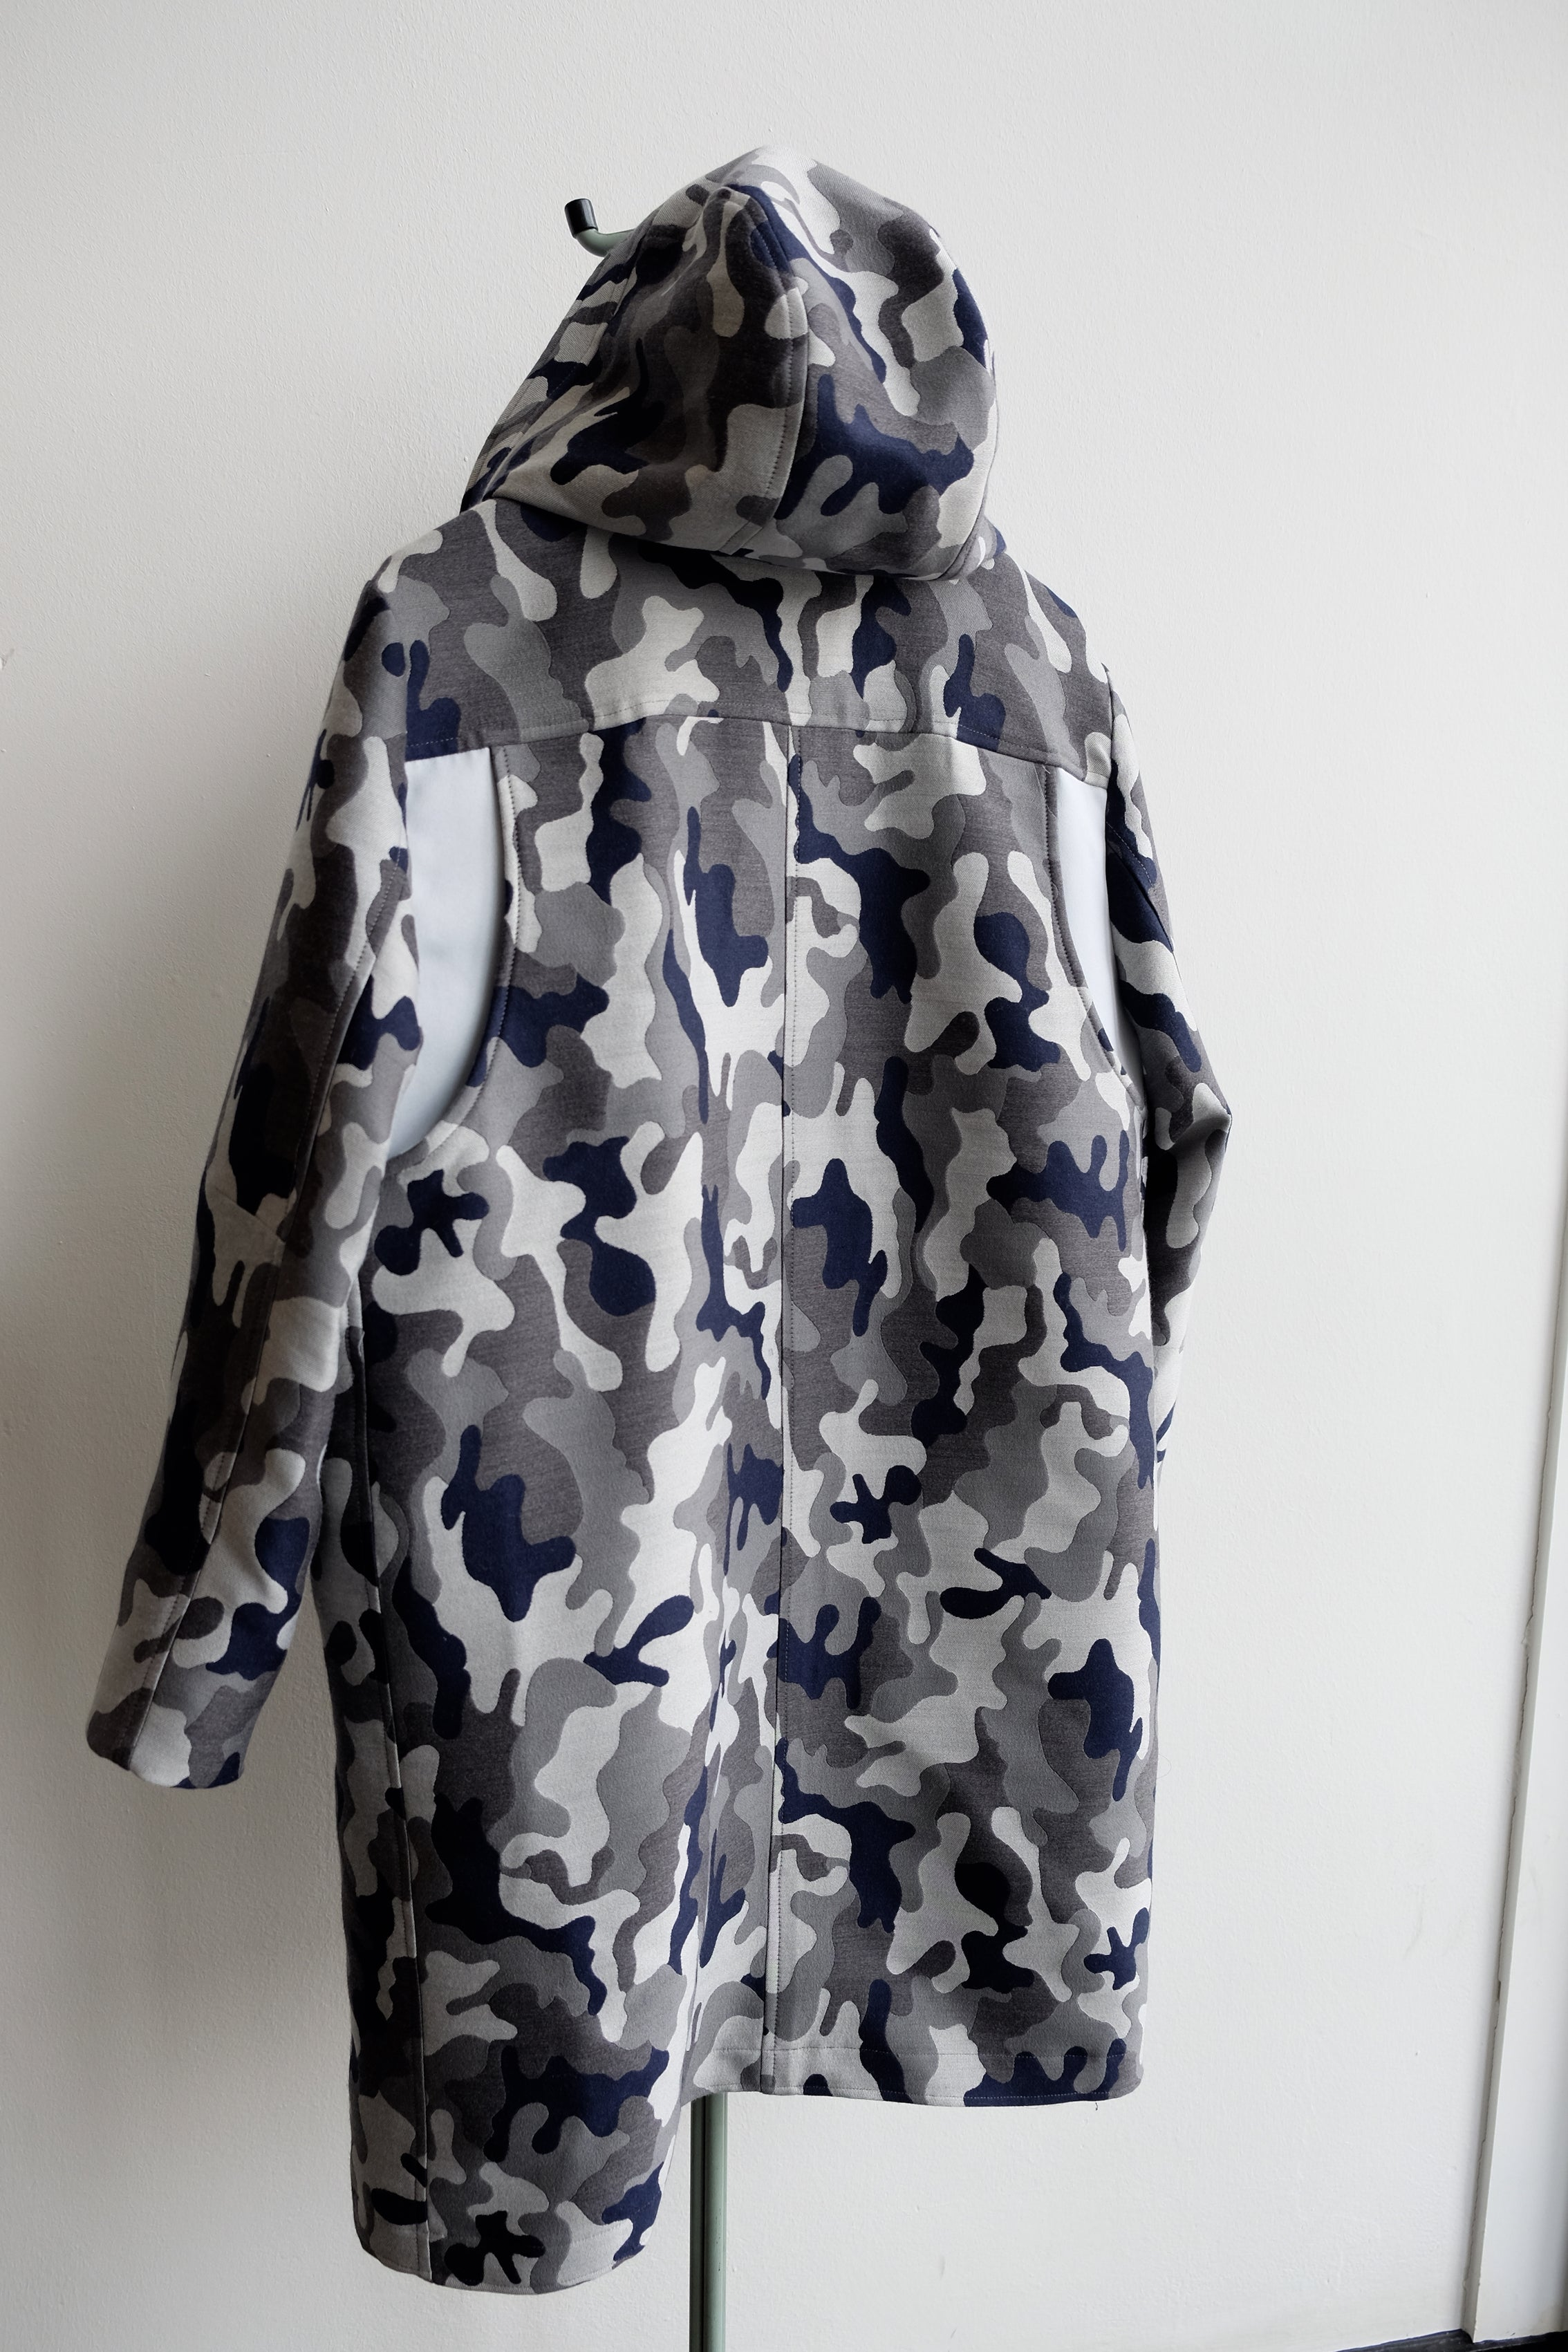 Snow Dust Camouflage Hoody wool Coat